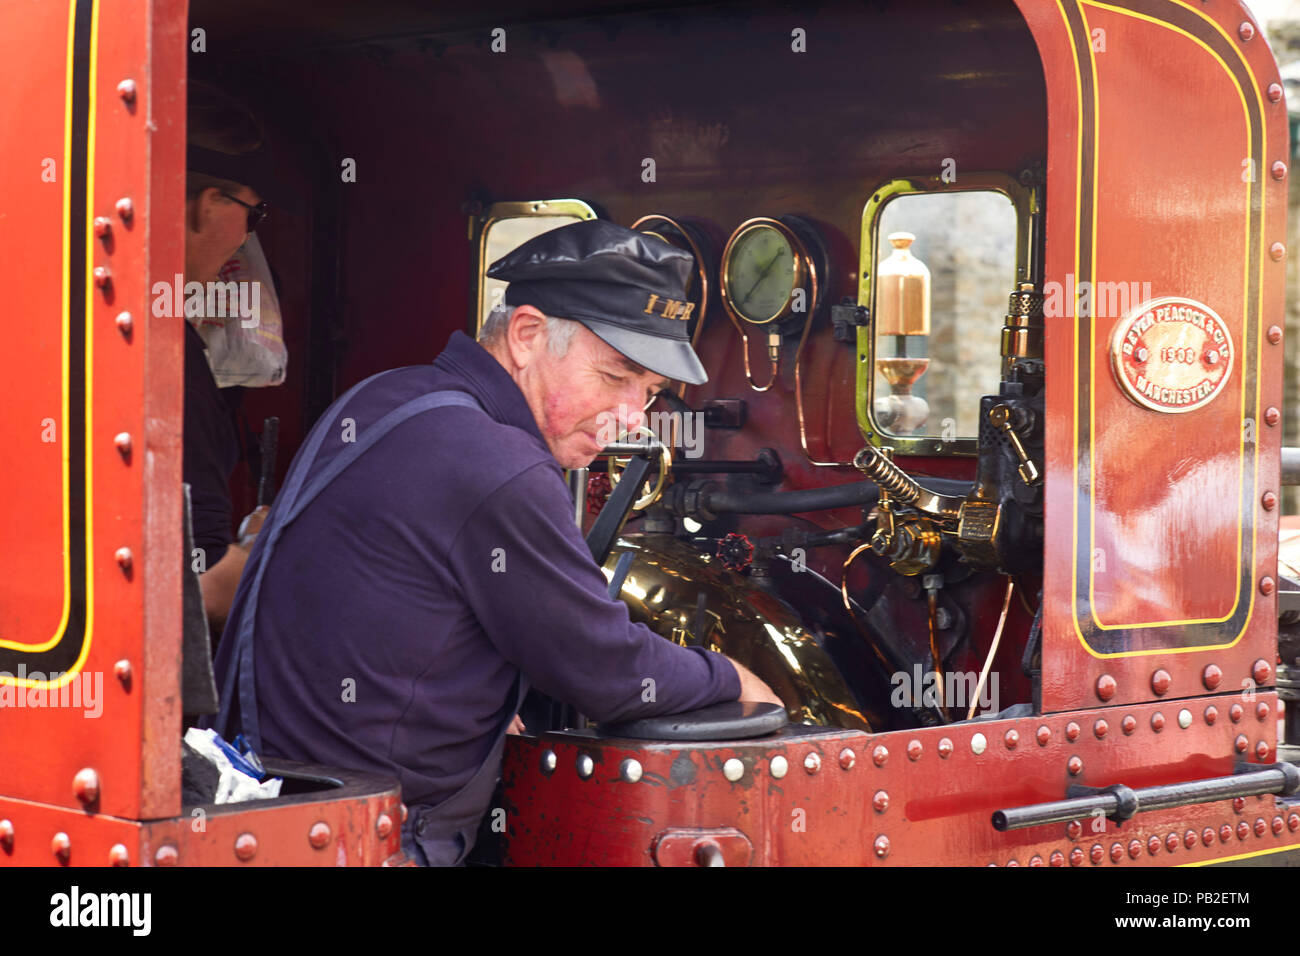 Isle of Man railways steam train driver in his cab at Port Erin station - Stock Image